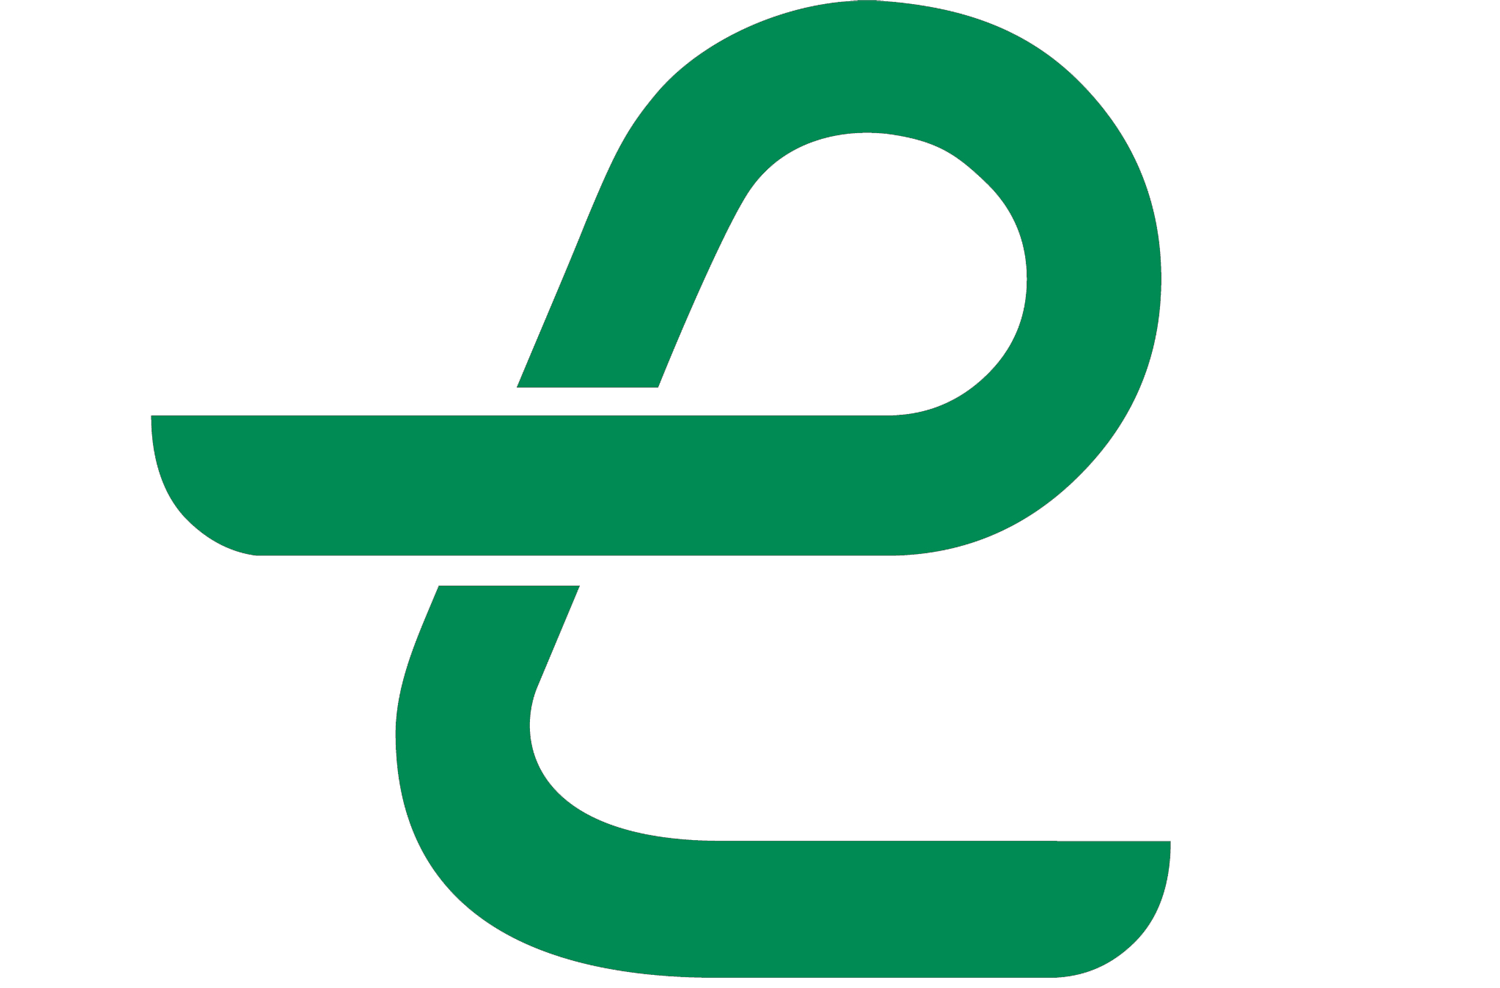 Logoelement Eichberger Metallbau